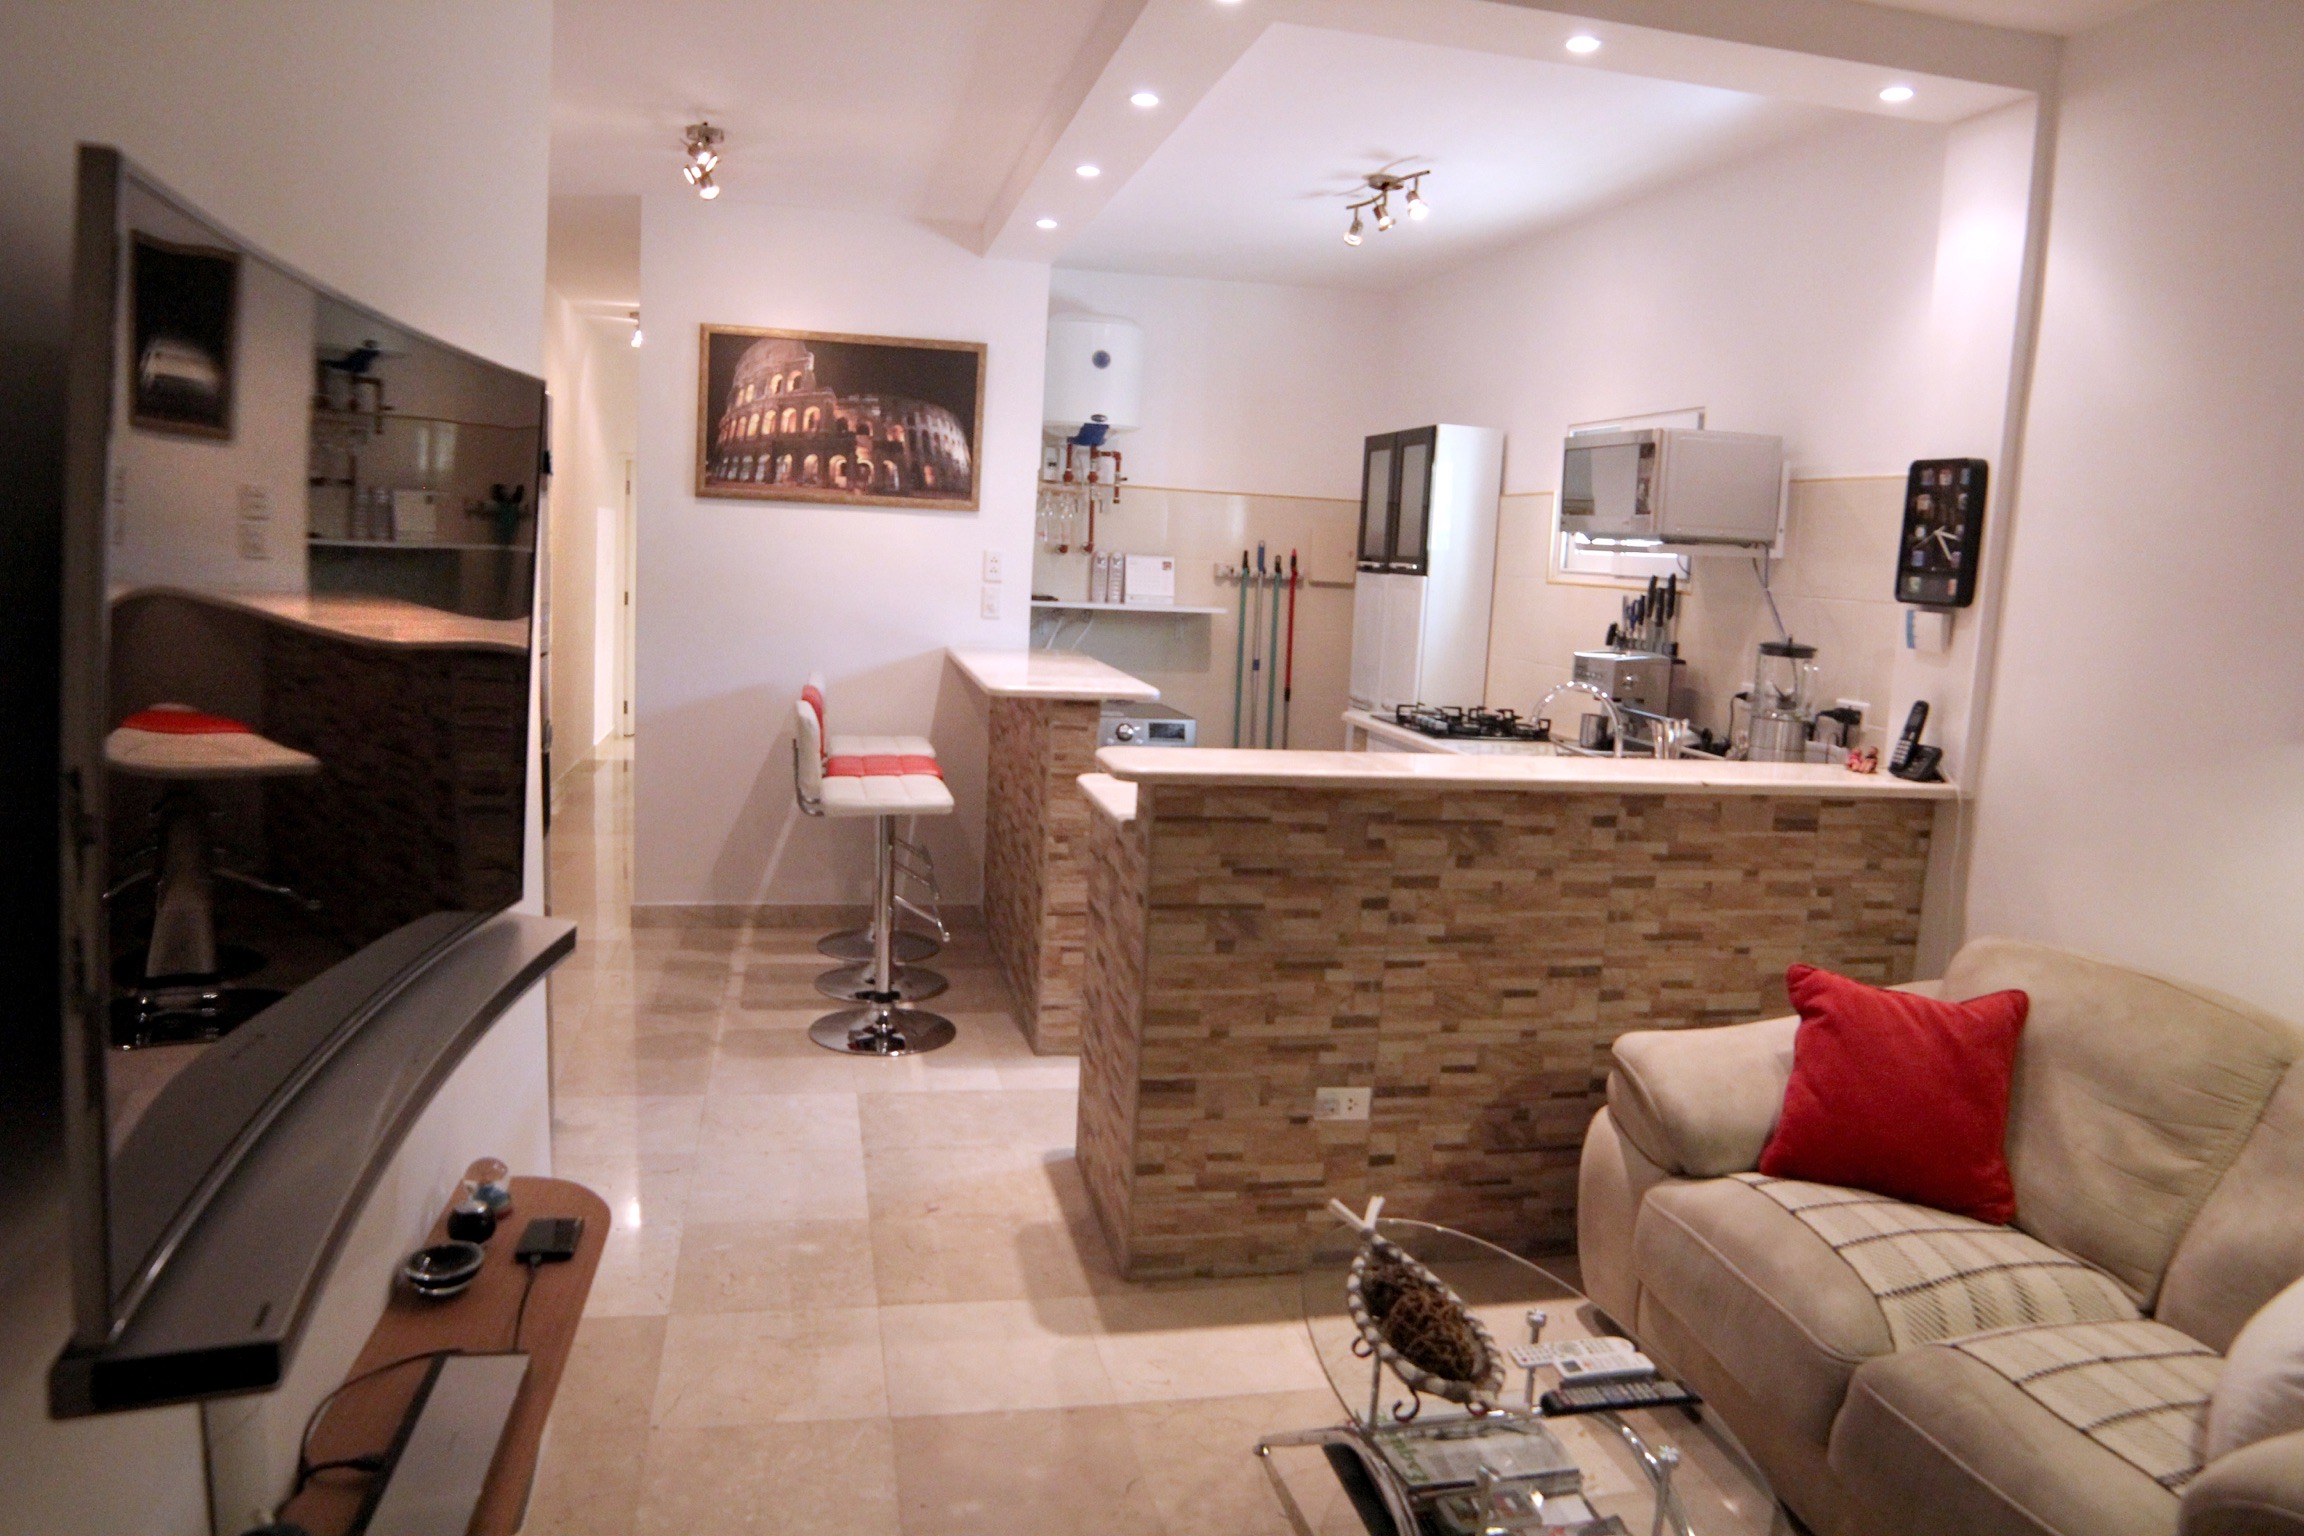 DAVID'S APARTMENT    LUXURY    RECOMENDED